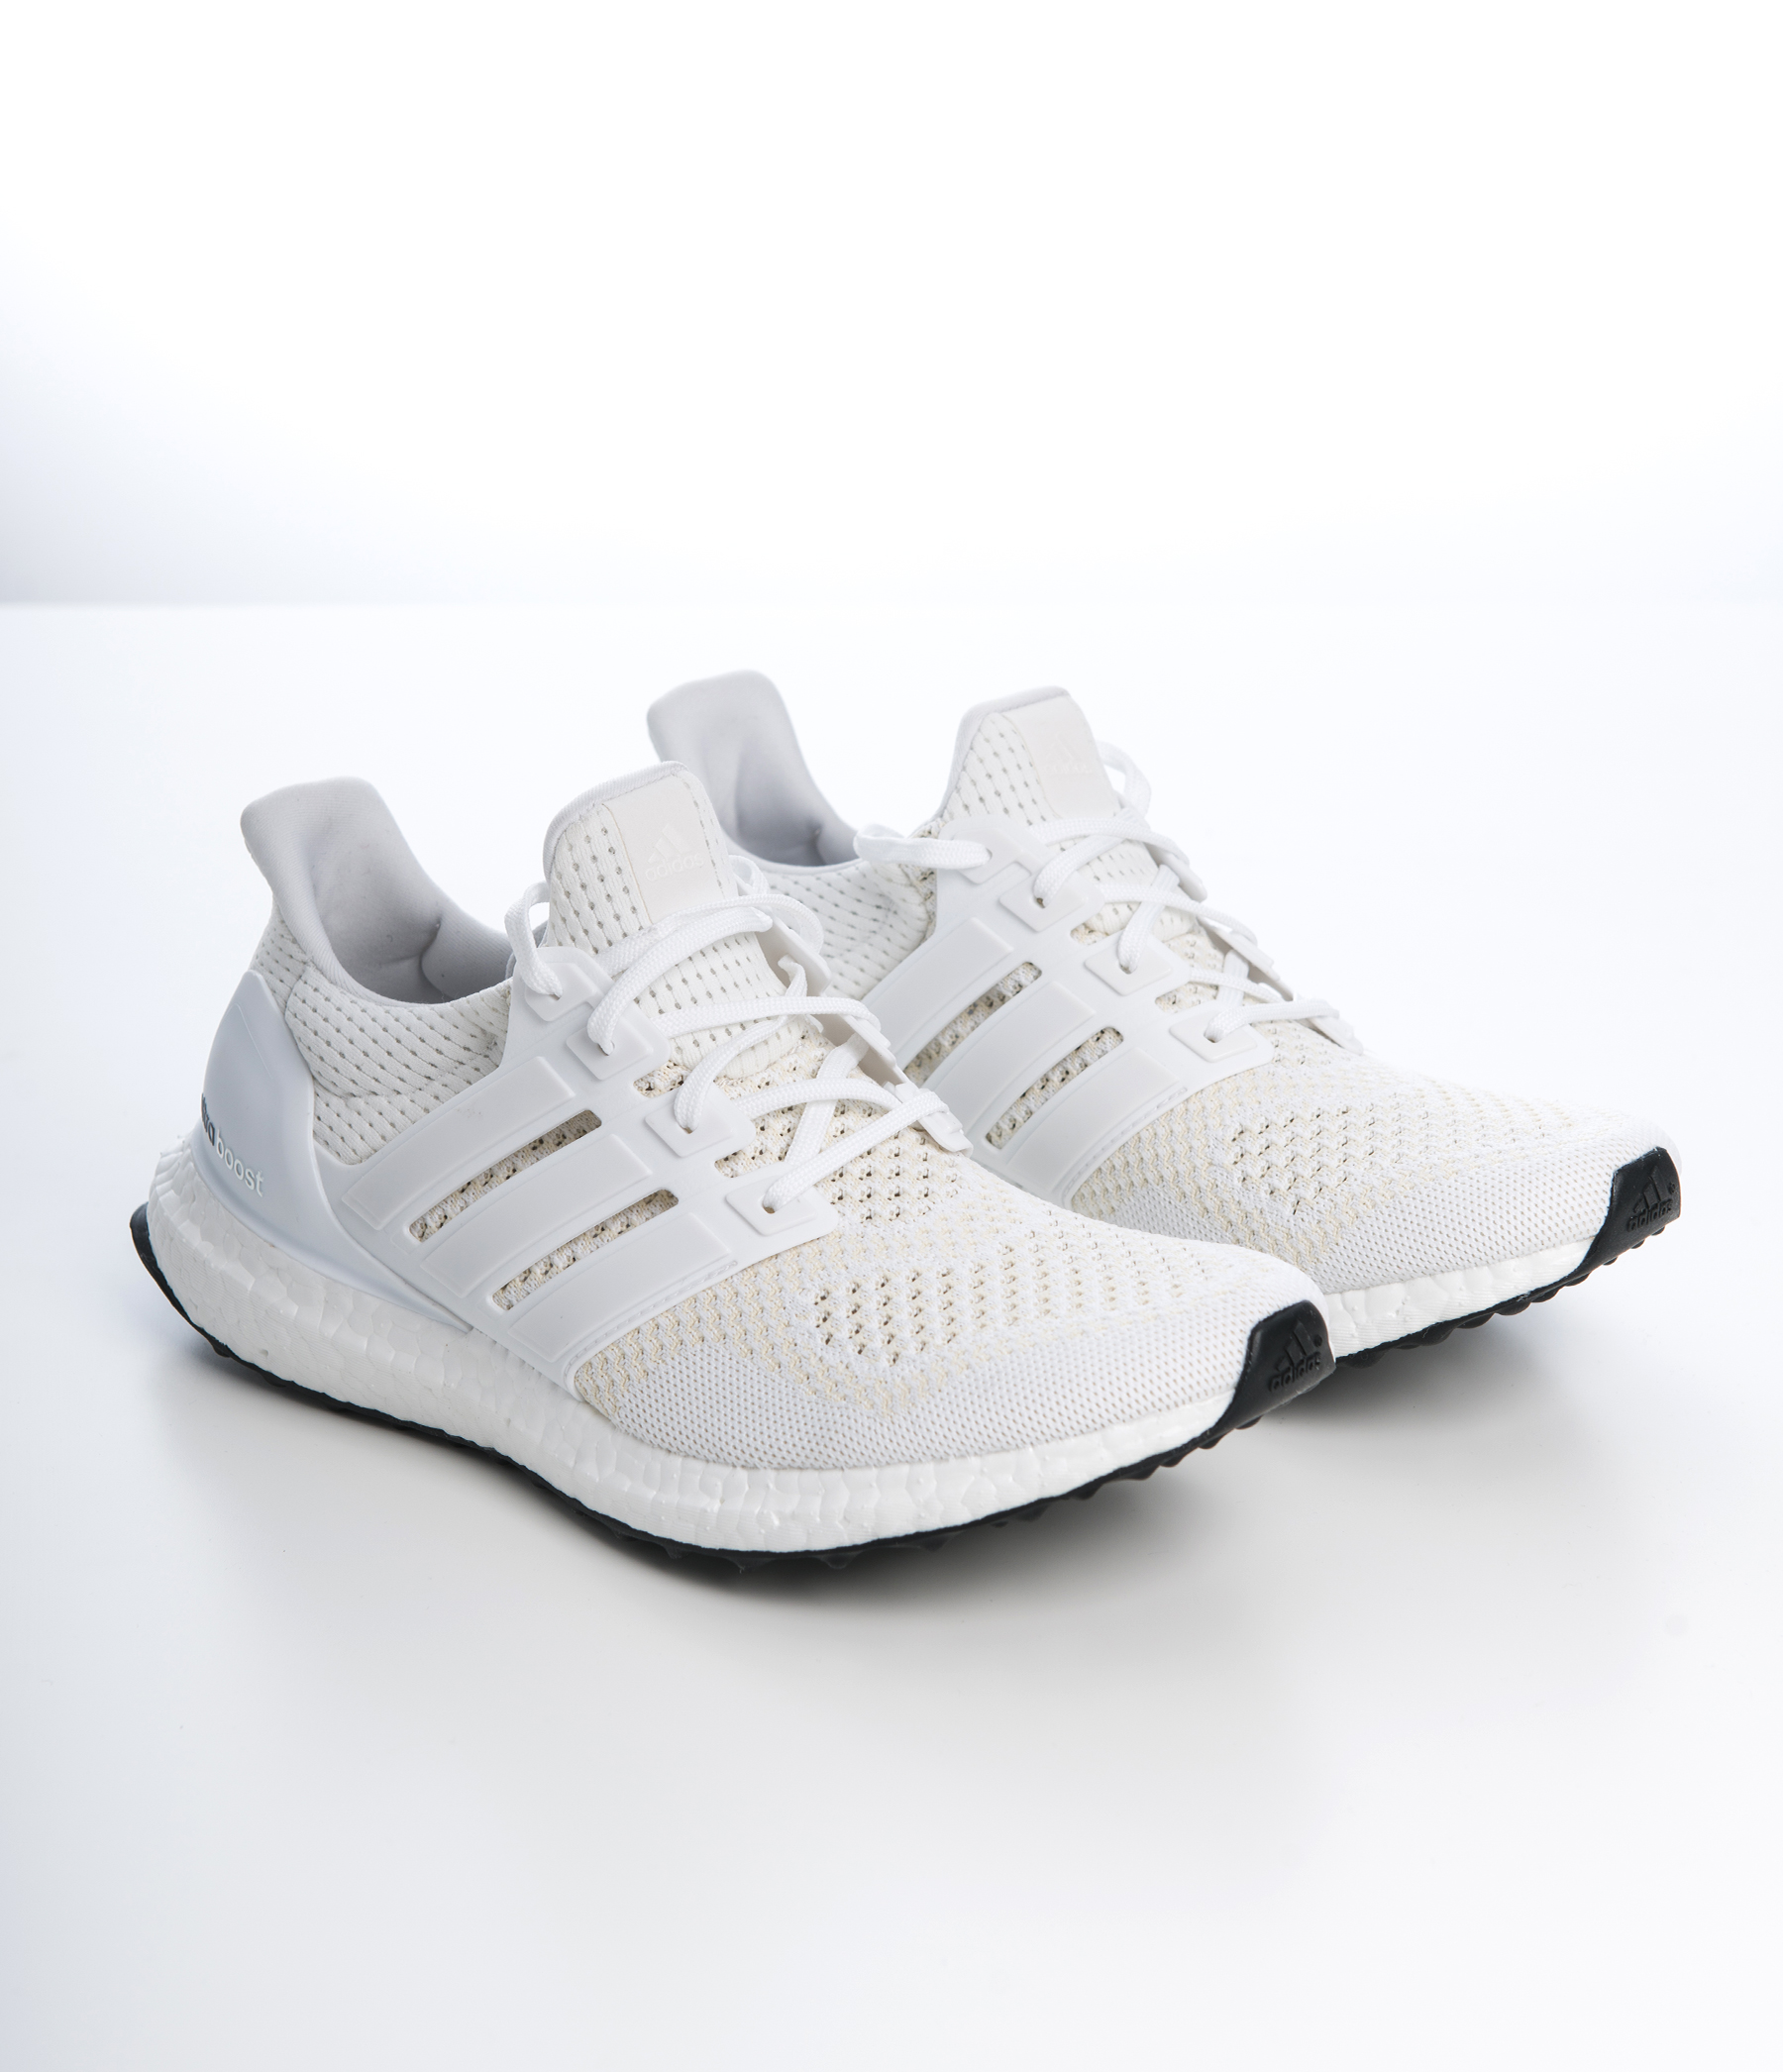 classic classic fit no sale tax Adidas Ultra Boost (White)